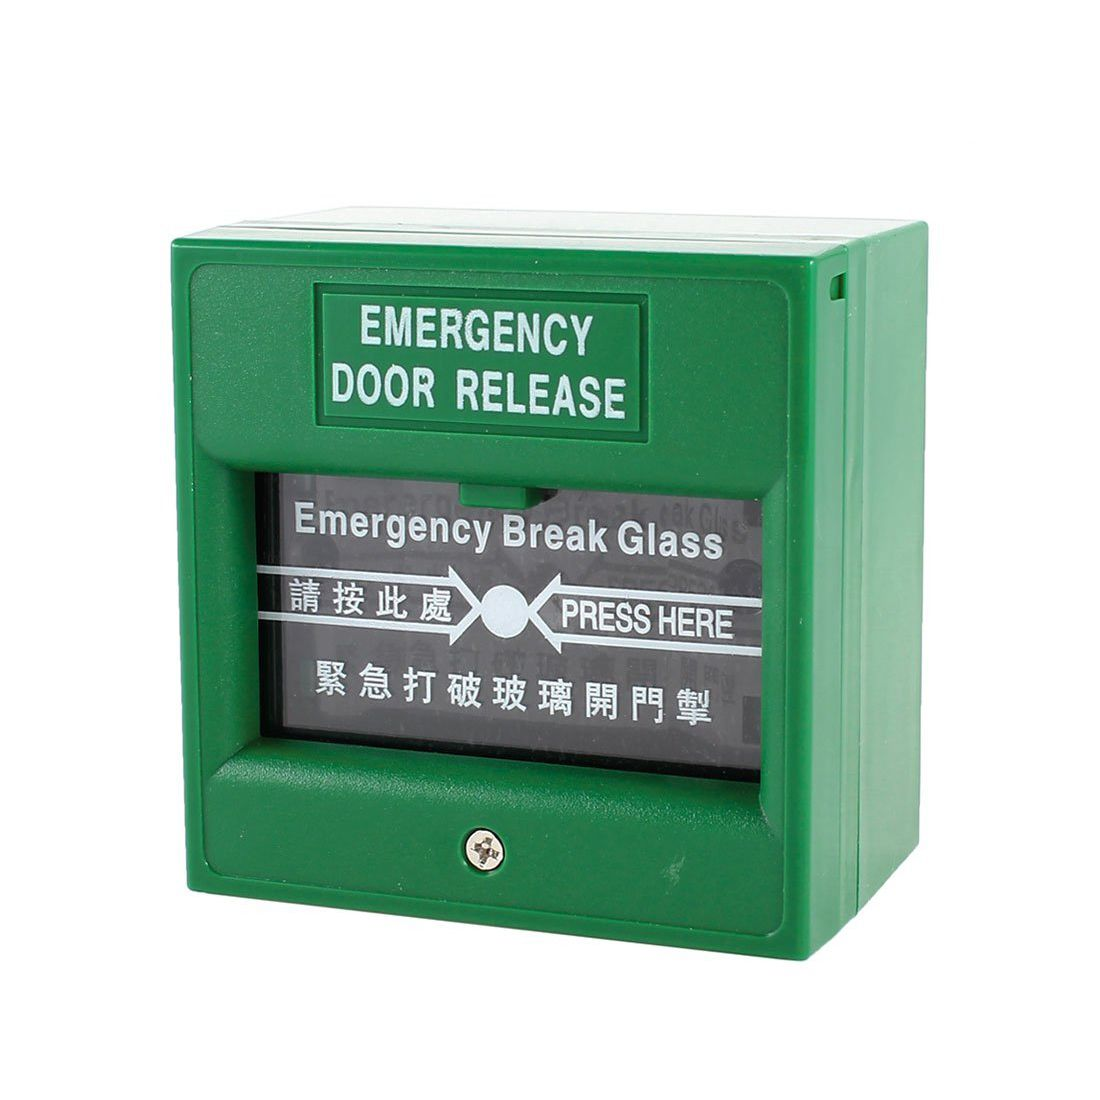 Green Security Alarm Fire Break glass Button Emergency Door ReleaseGreen Security Alarm Fire Break glass Button Emergency Door Release